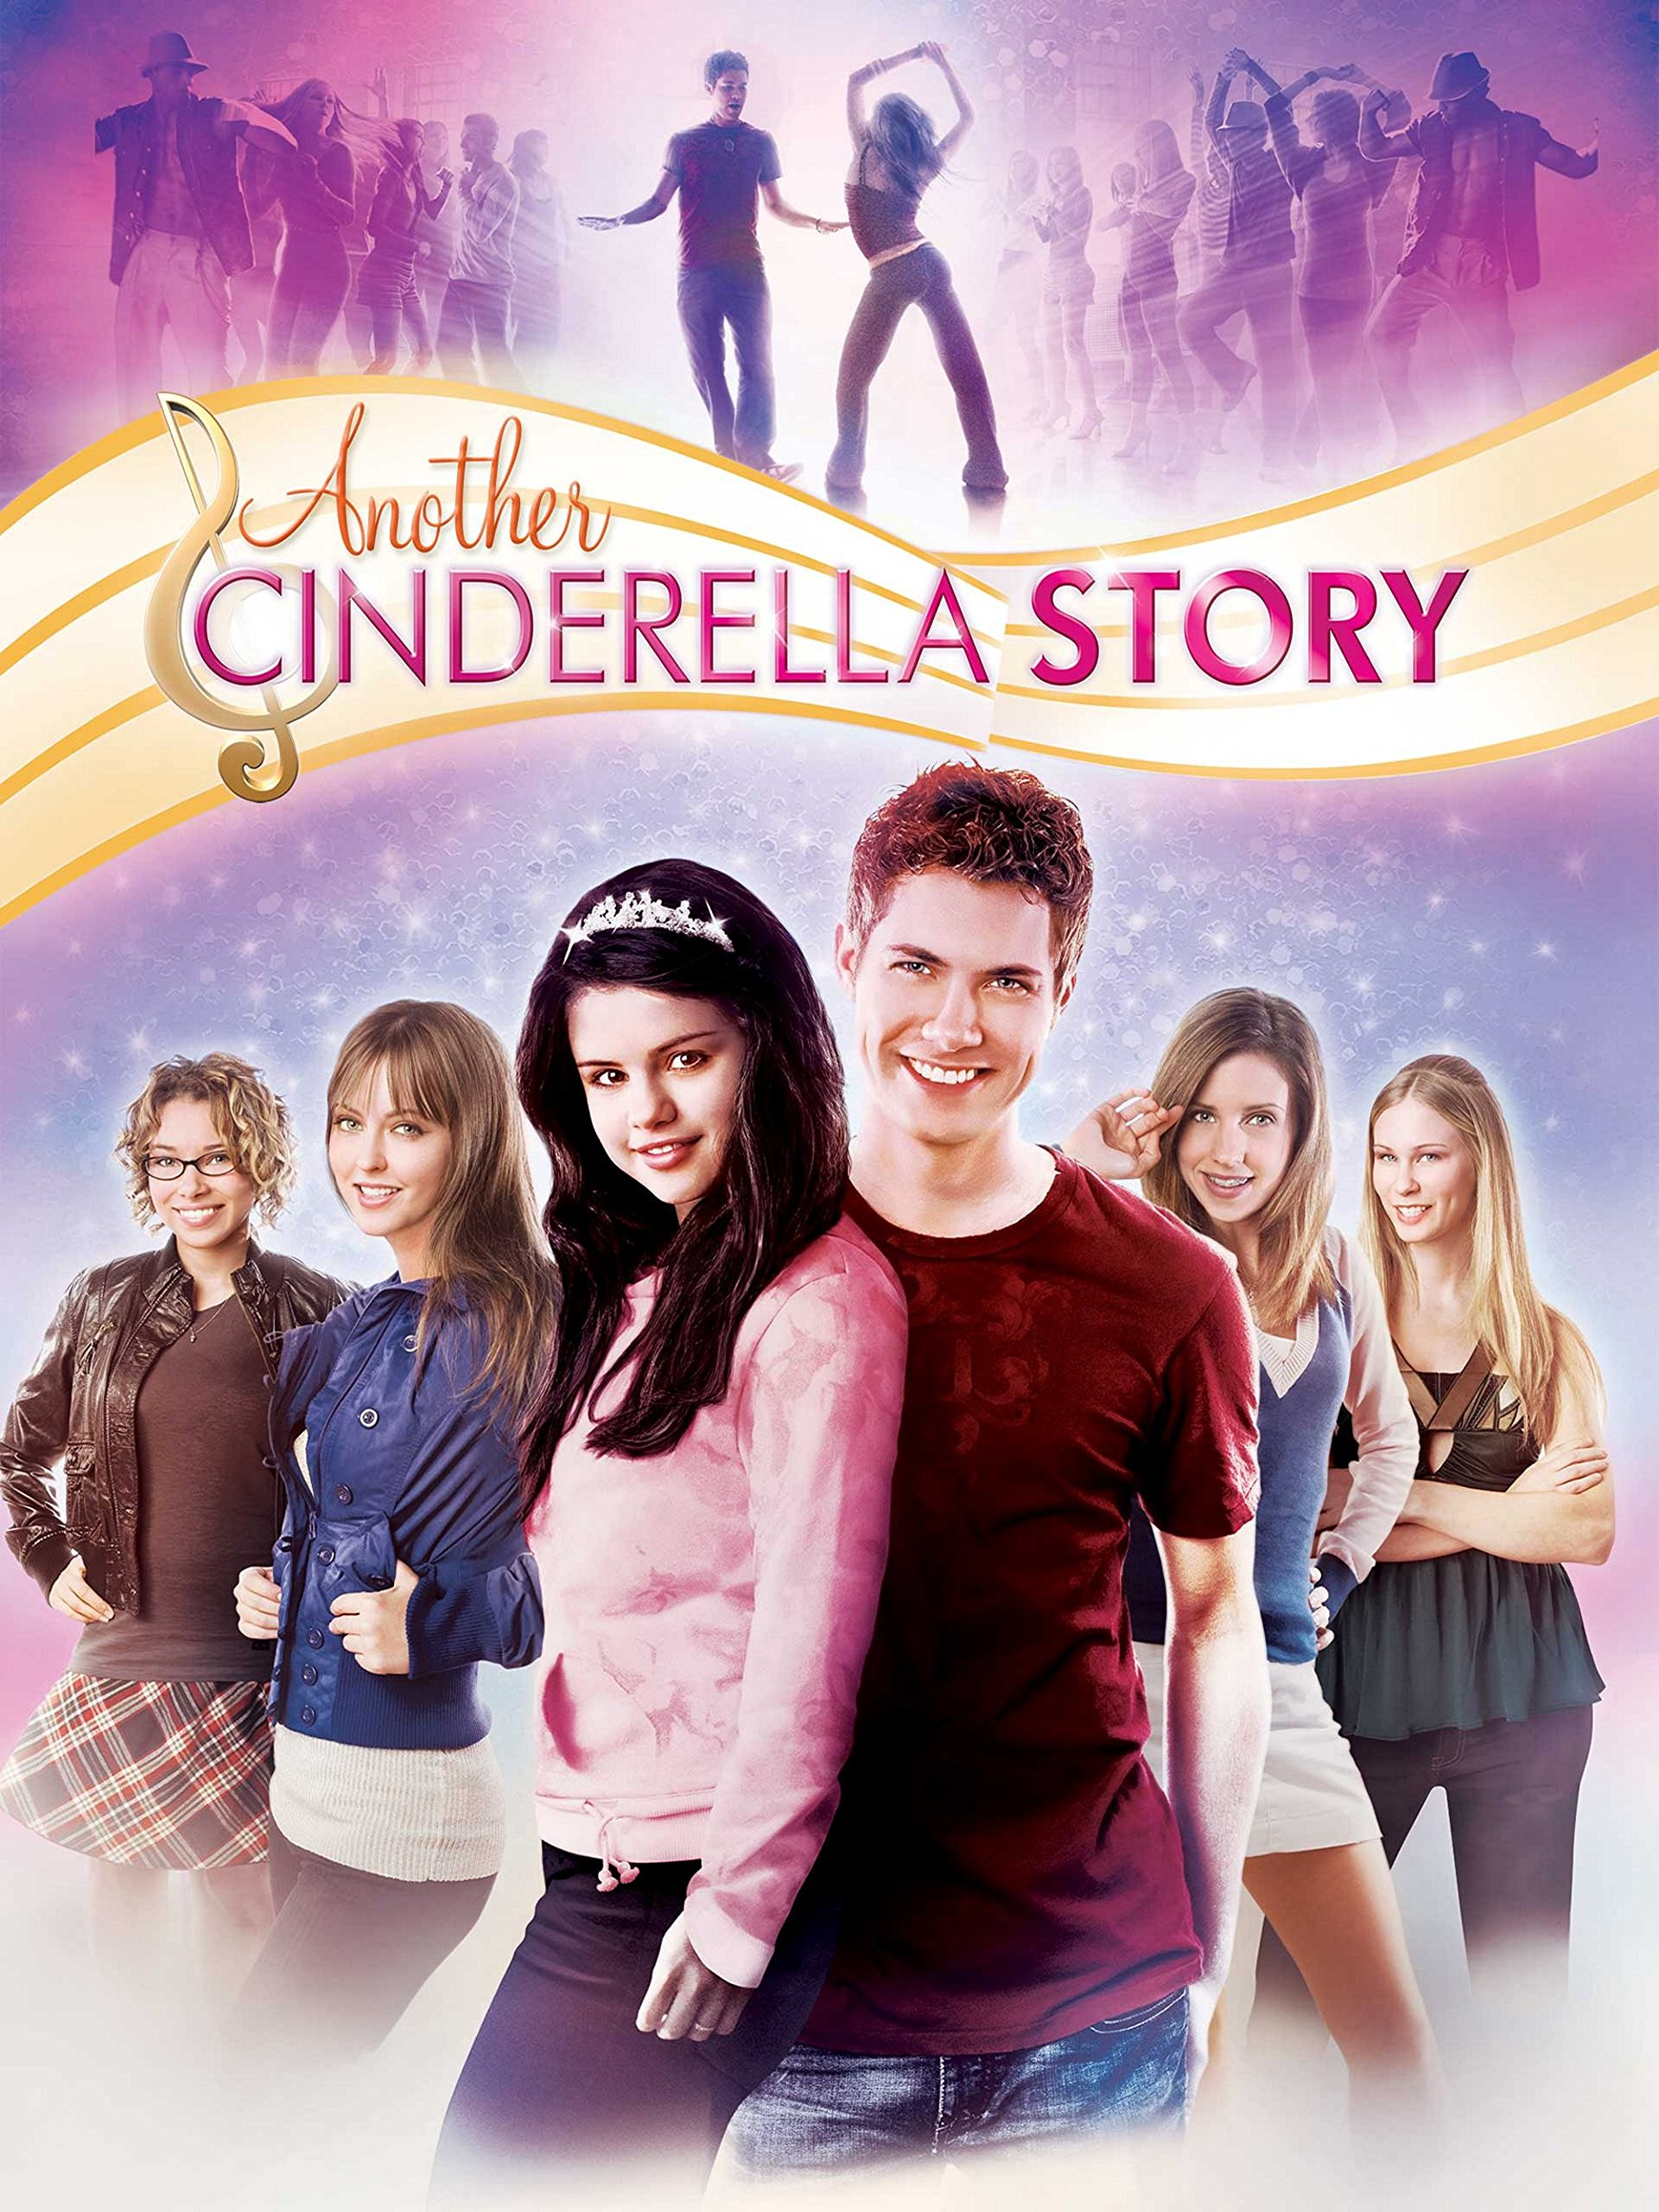 Amazon. Com: watch another cinderella story | prime video.